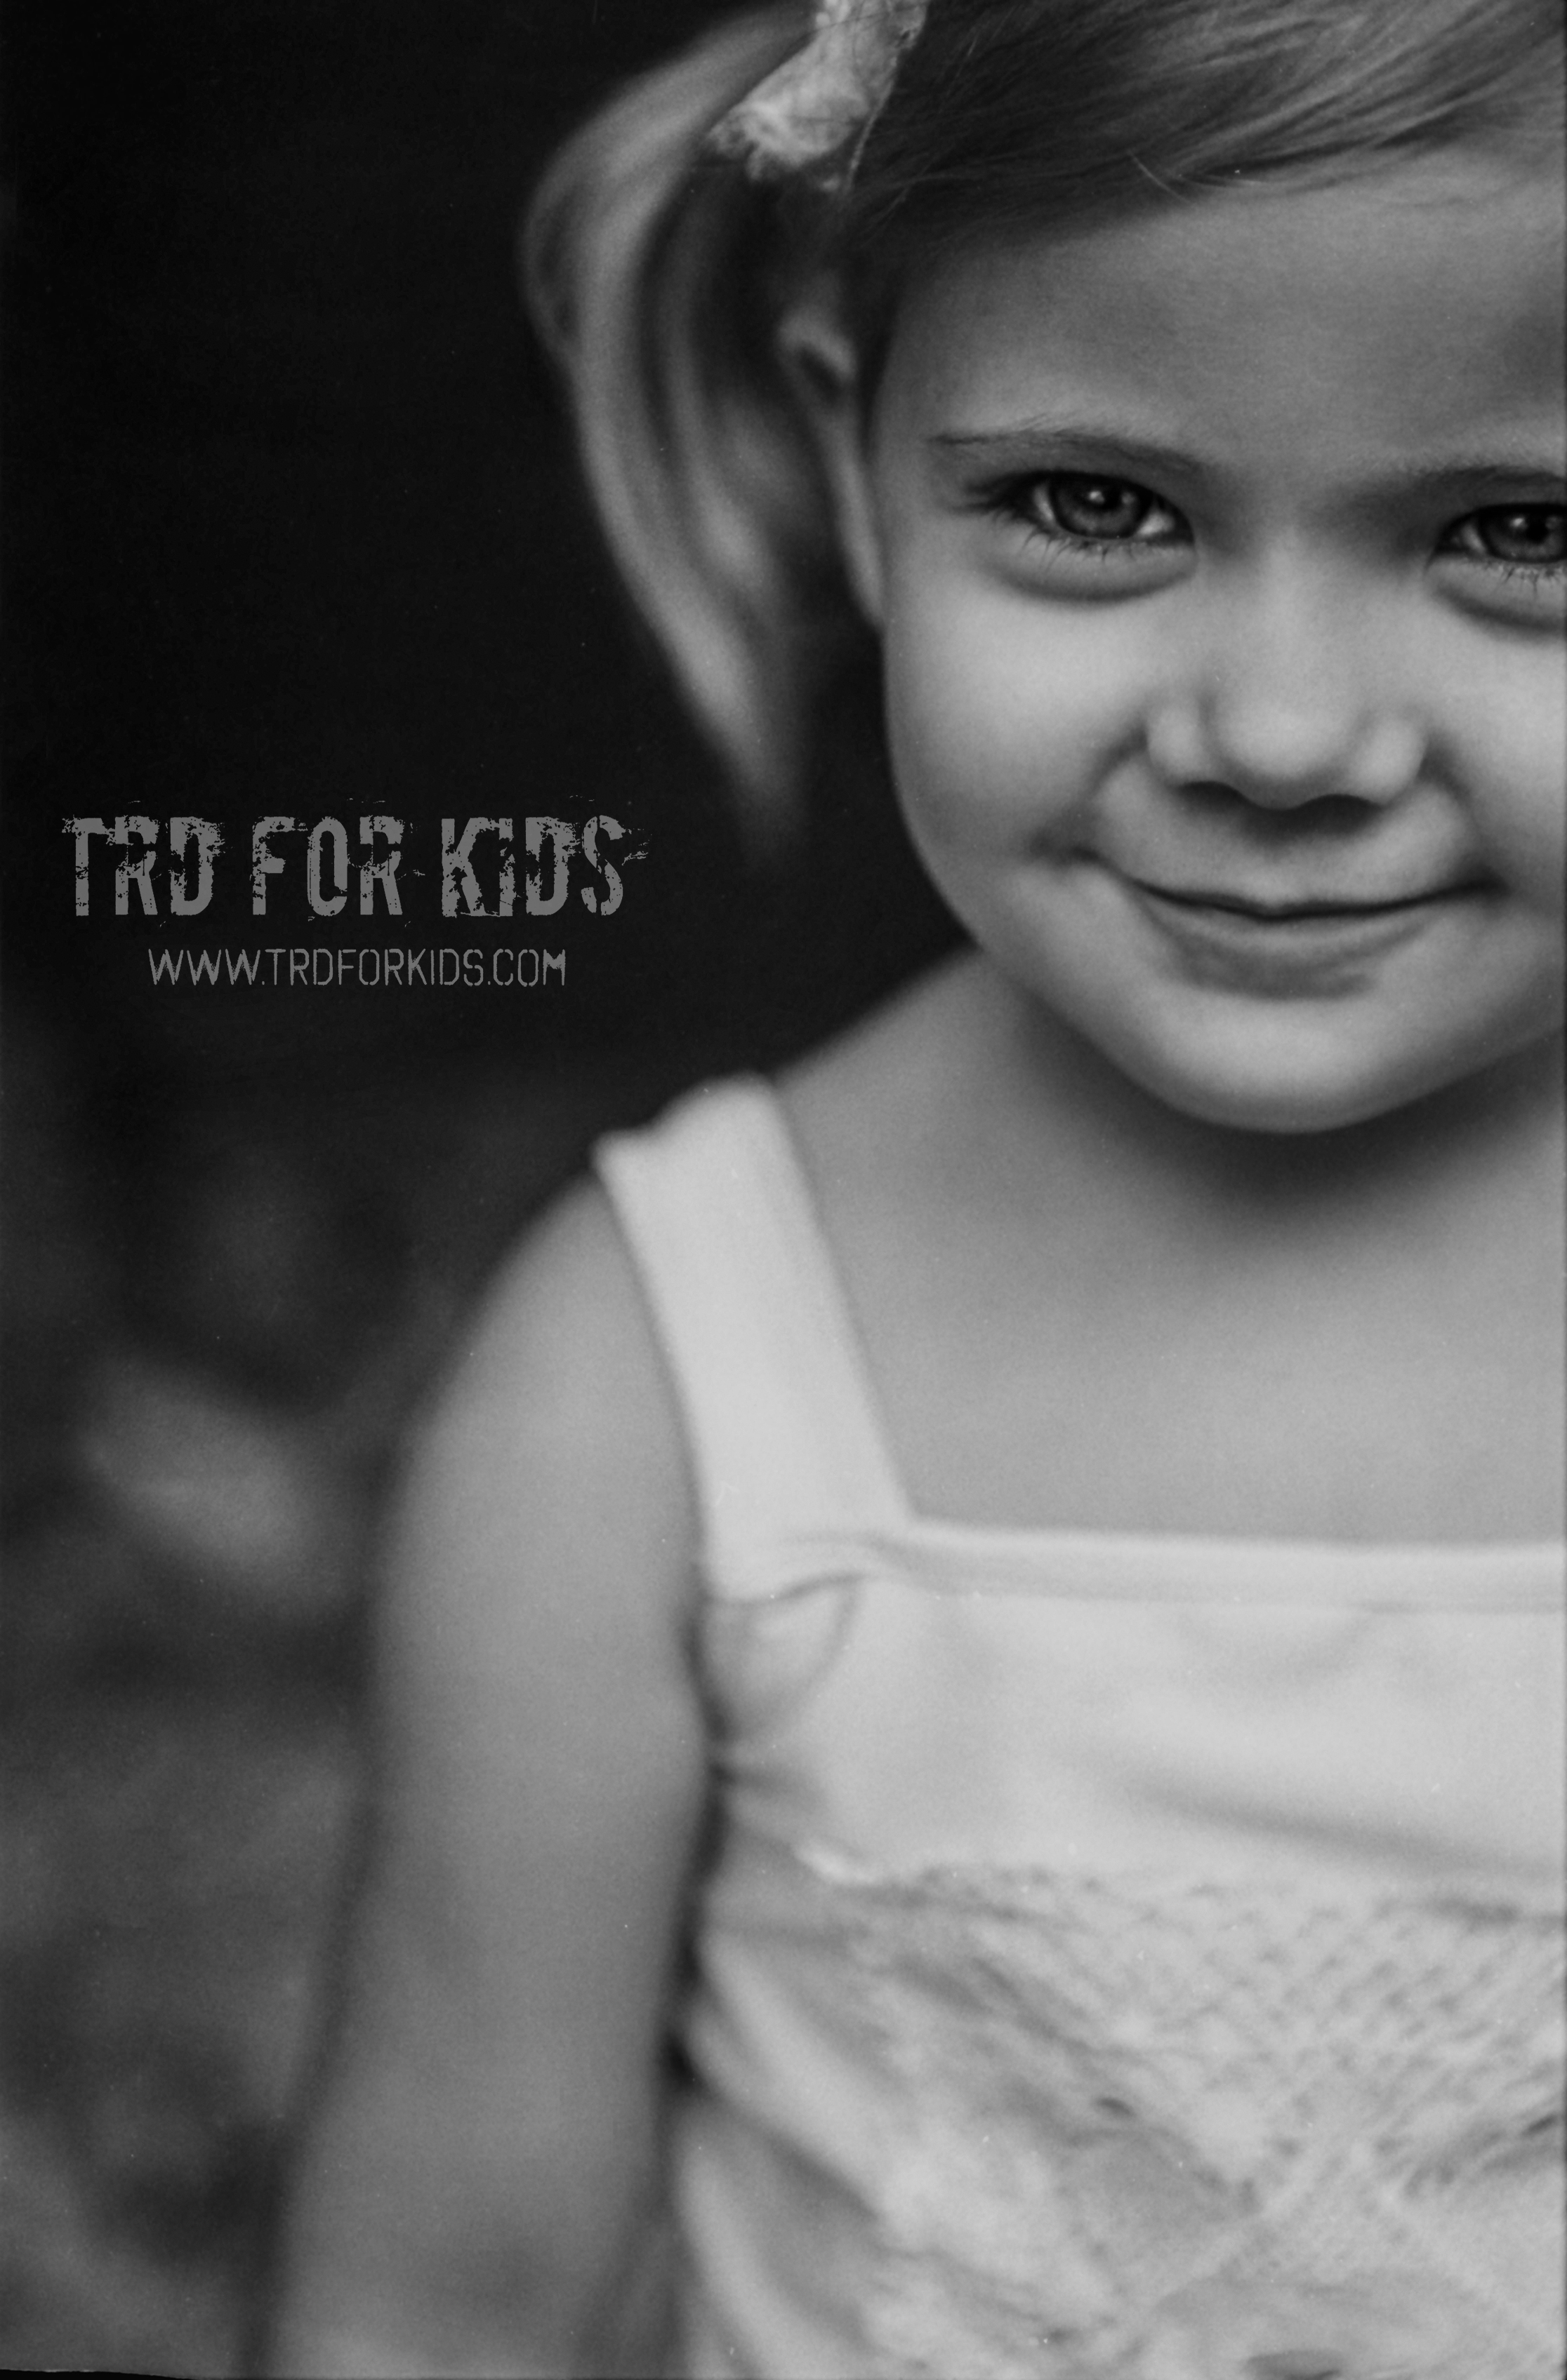 Film Photograph Sessions - TRD Photography - Chattanooga Portrait Photographer